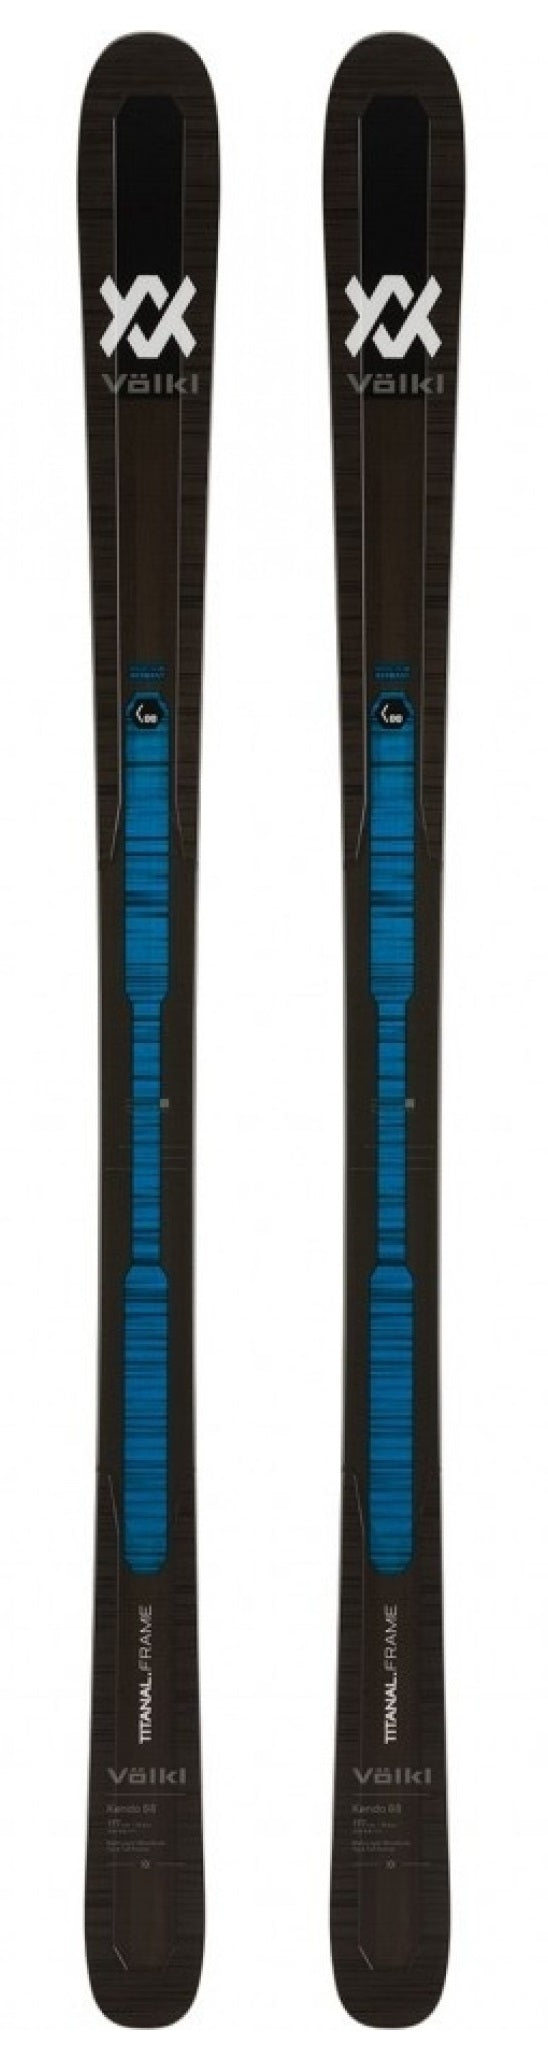 2020 VOLKL Kendo snow skis - ProSkiGuy your Hometown Ski Shop on the web